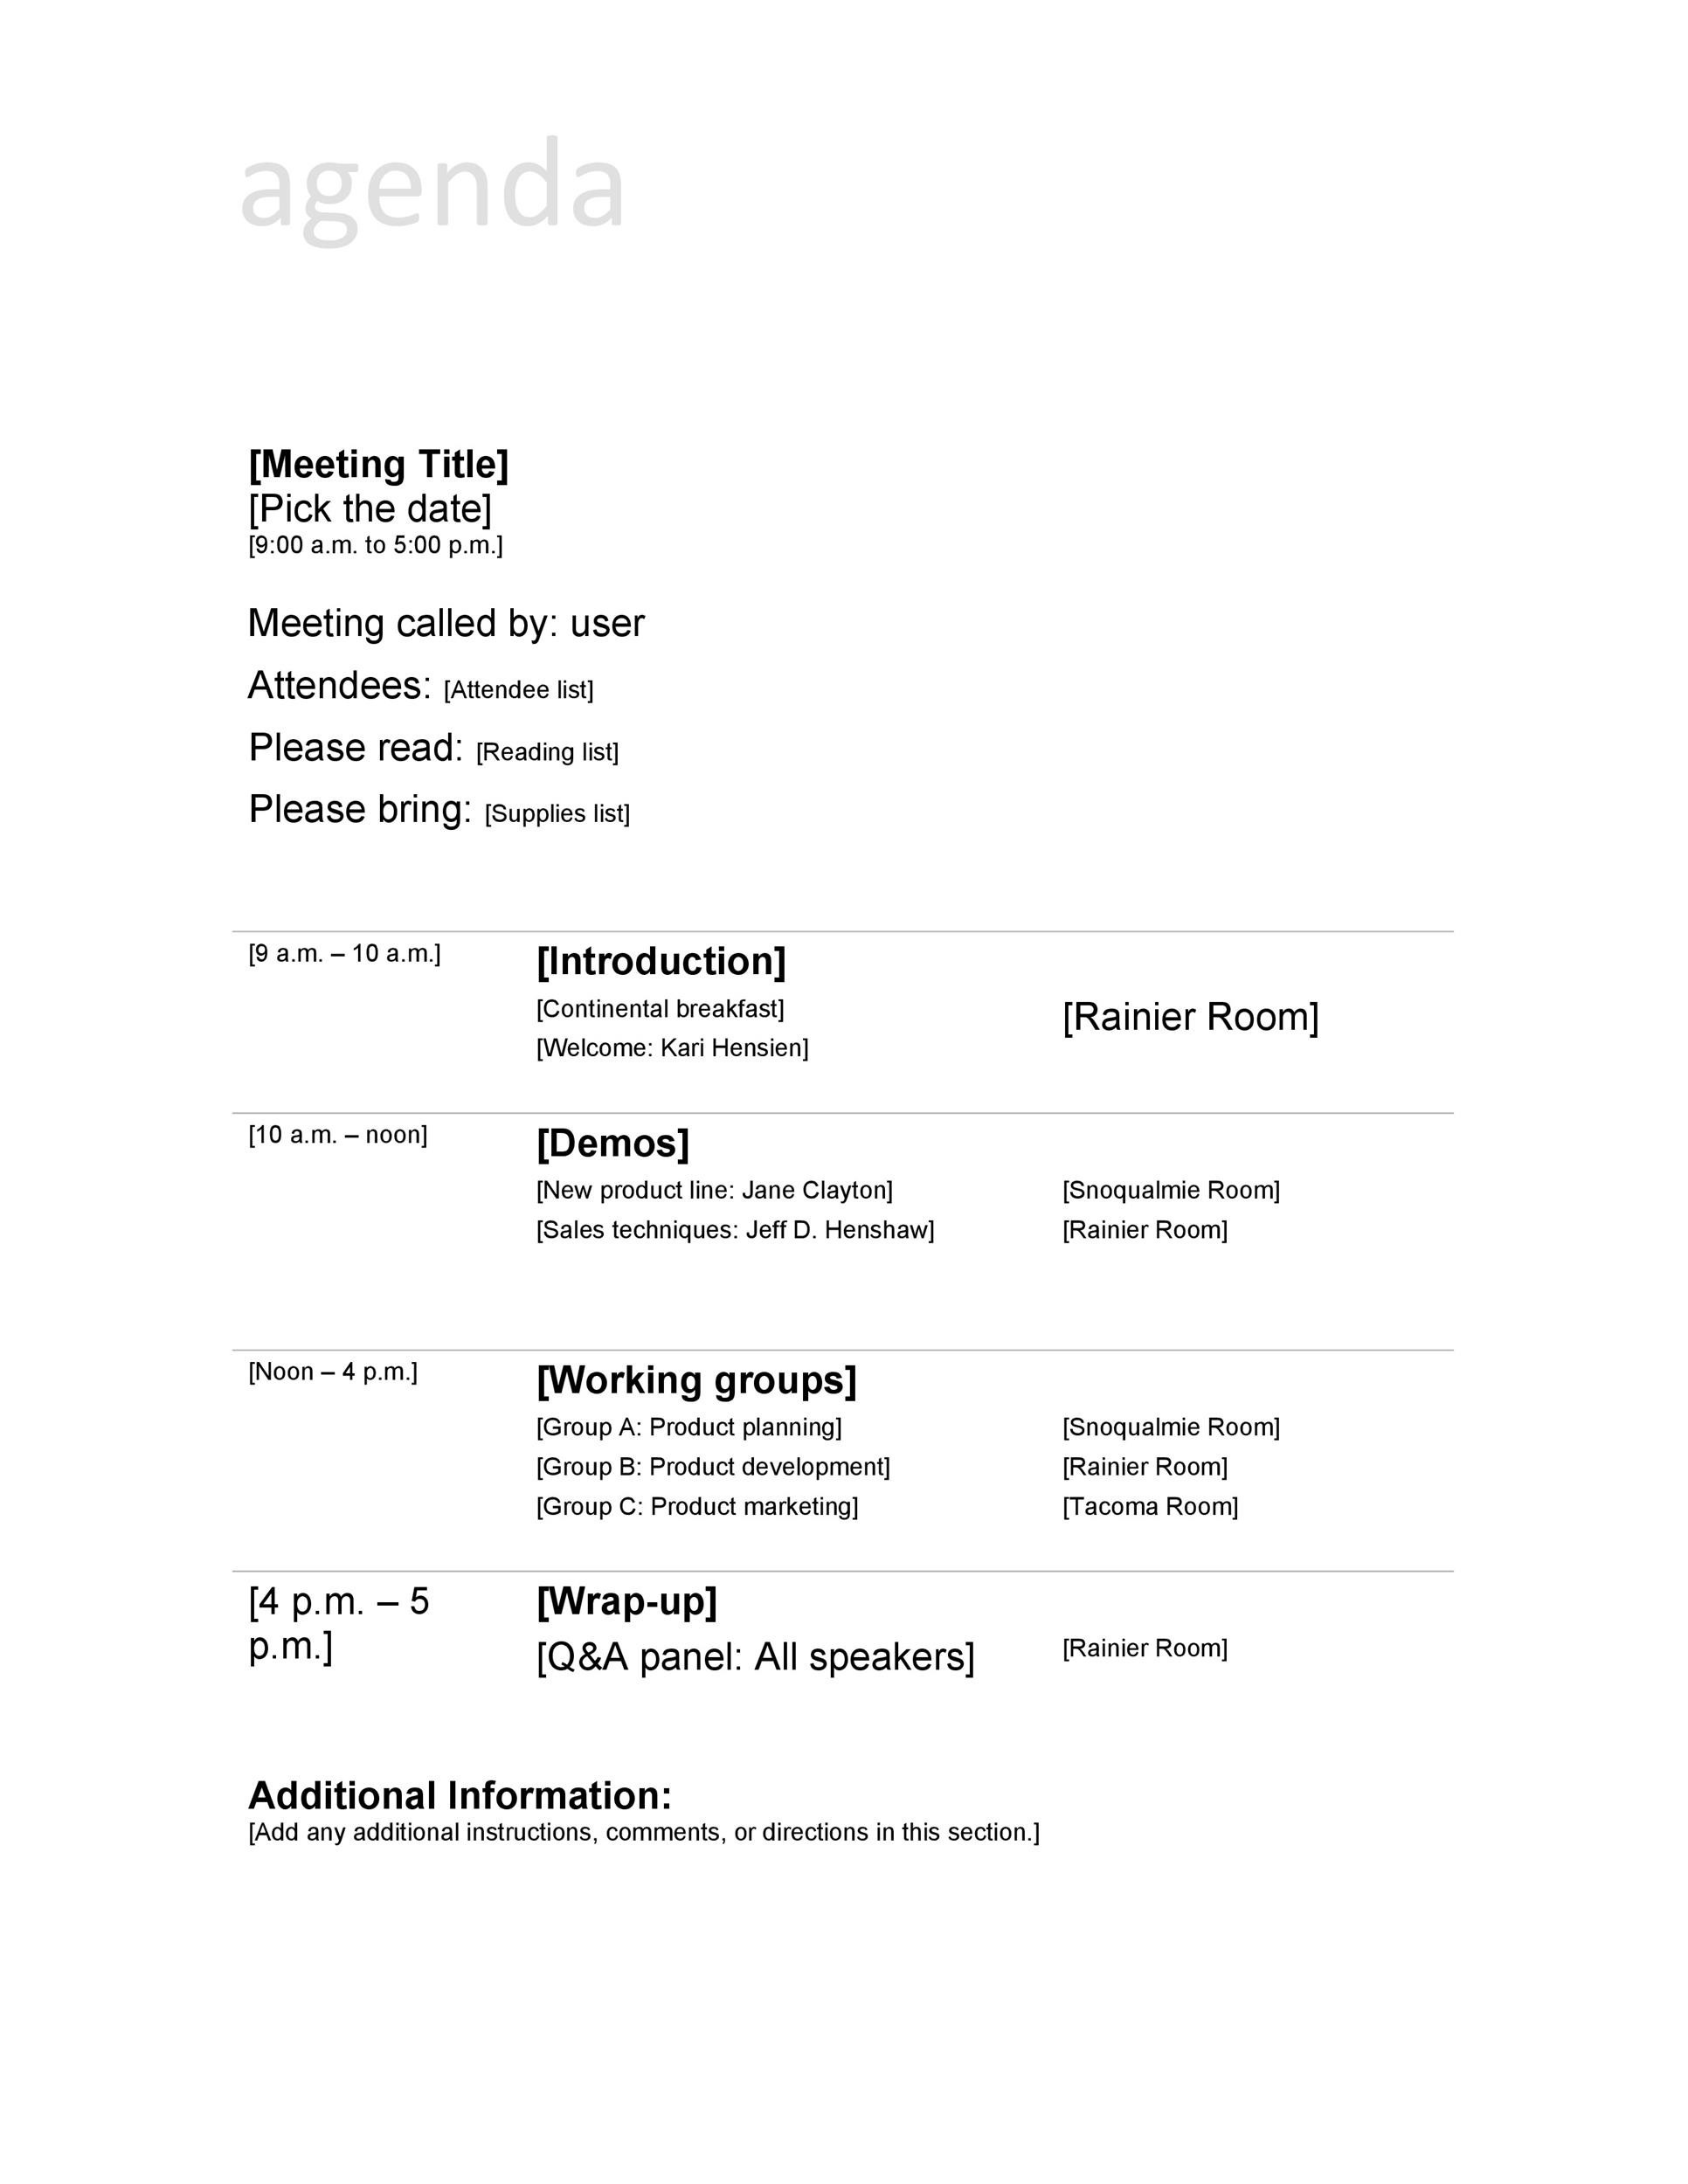 Meeting Agenda Template 05